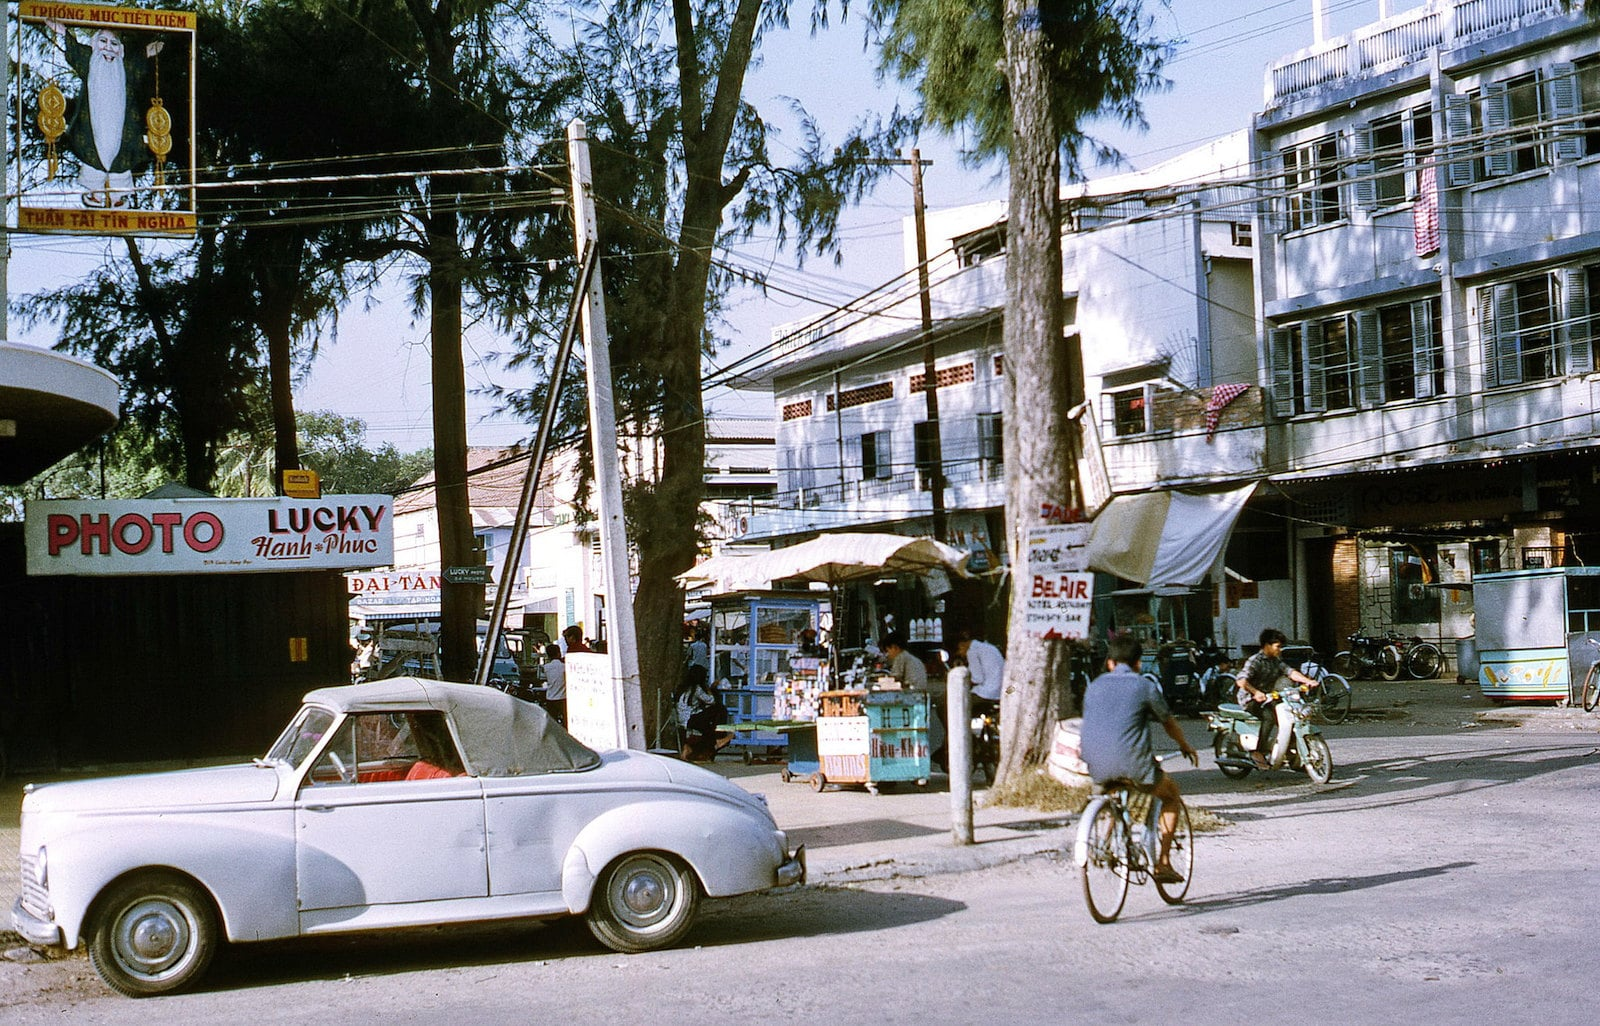 Image of Vung Tau in the 1970s